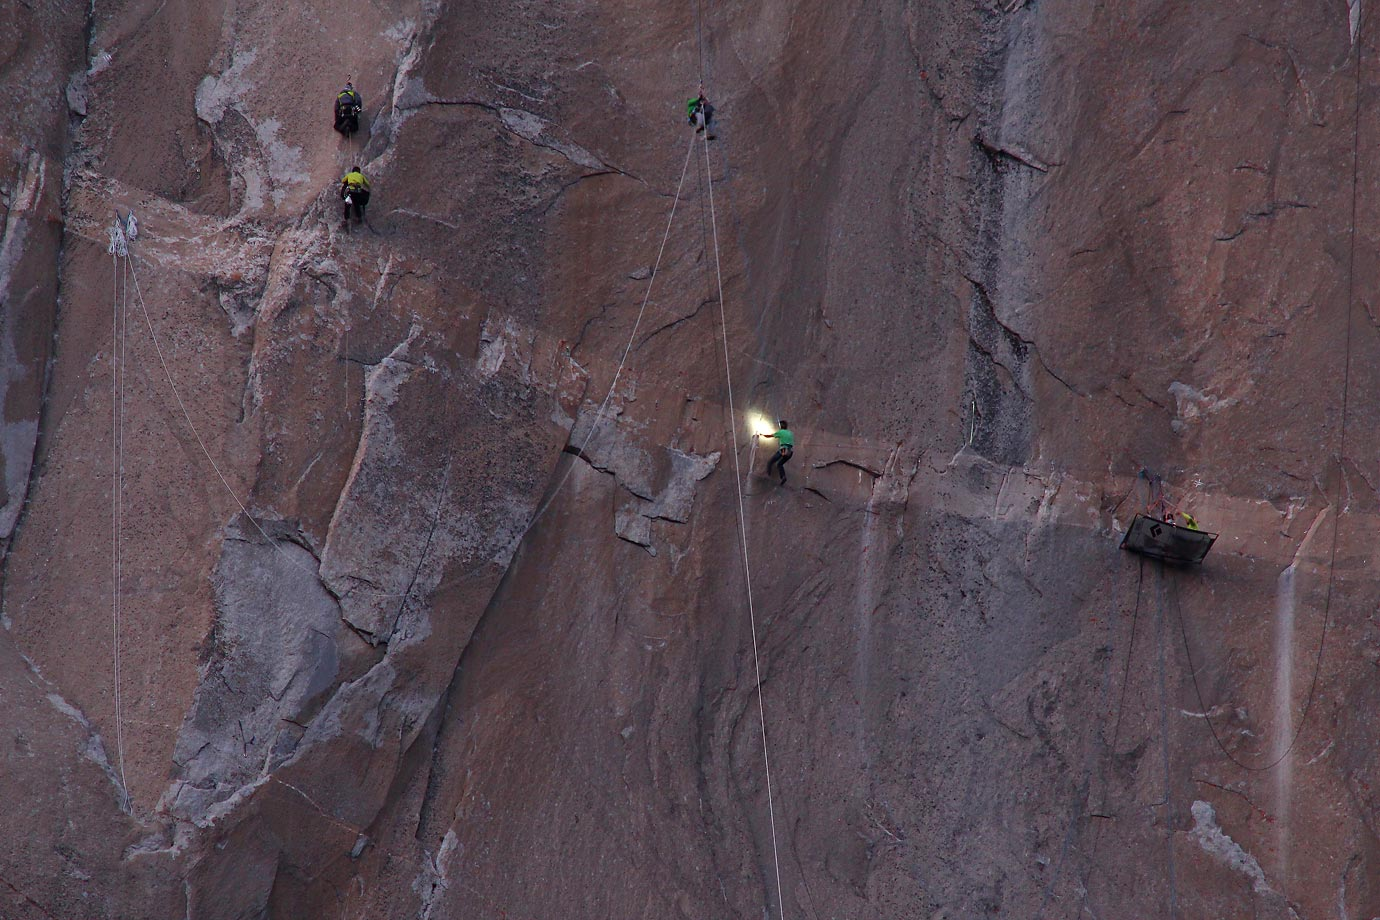 Kevin Jorgeson (center, in green) navigating Pitch 15 while Tommy Caldwell (right, in yellow) belays.  Multiple cameramen hang on ropes taking photos and video.